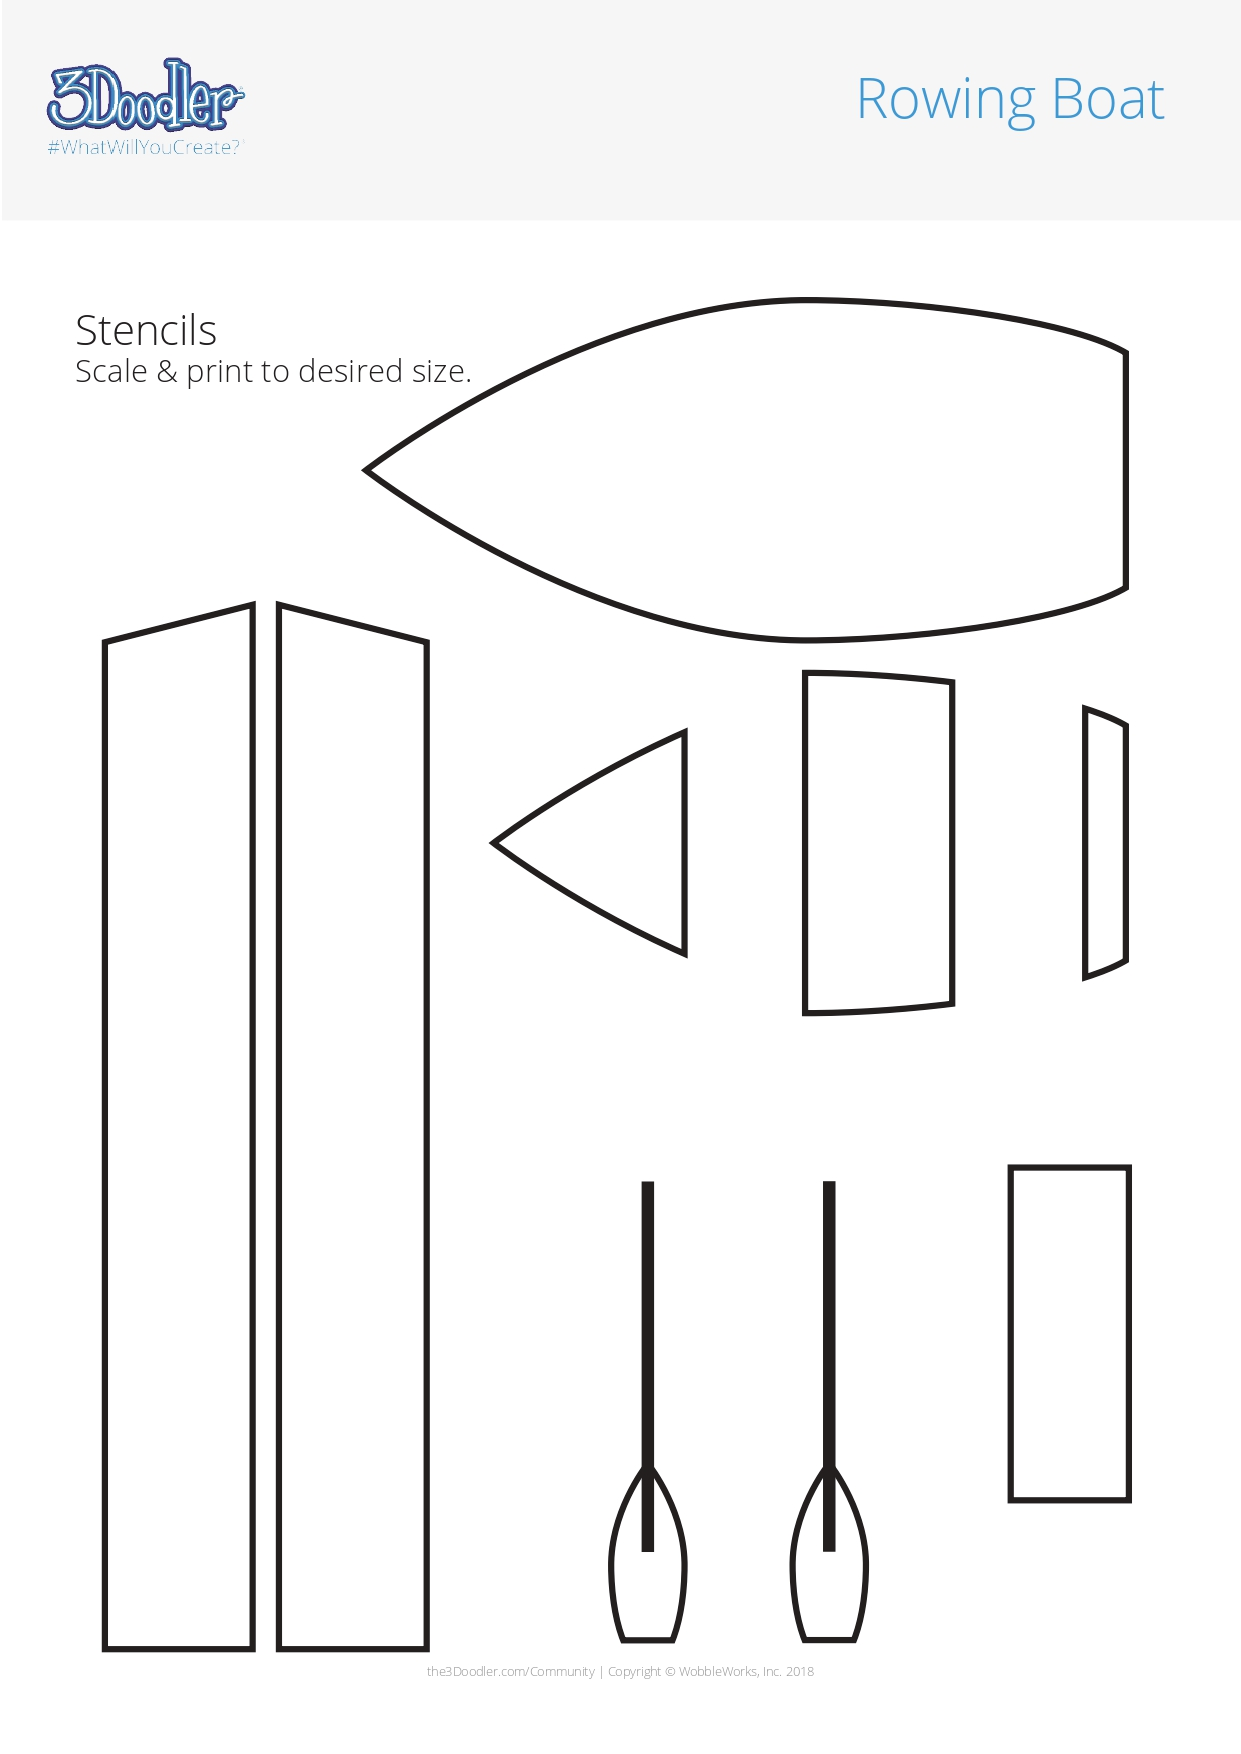 3D Pen Stencil Template Rowing Boats